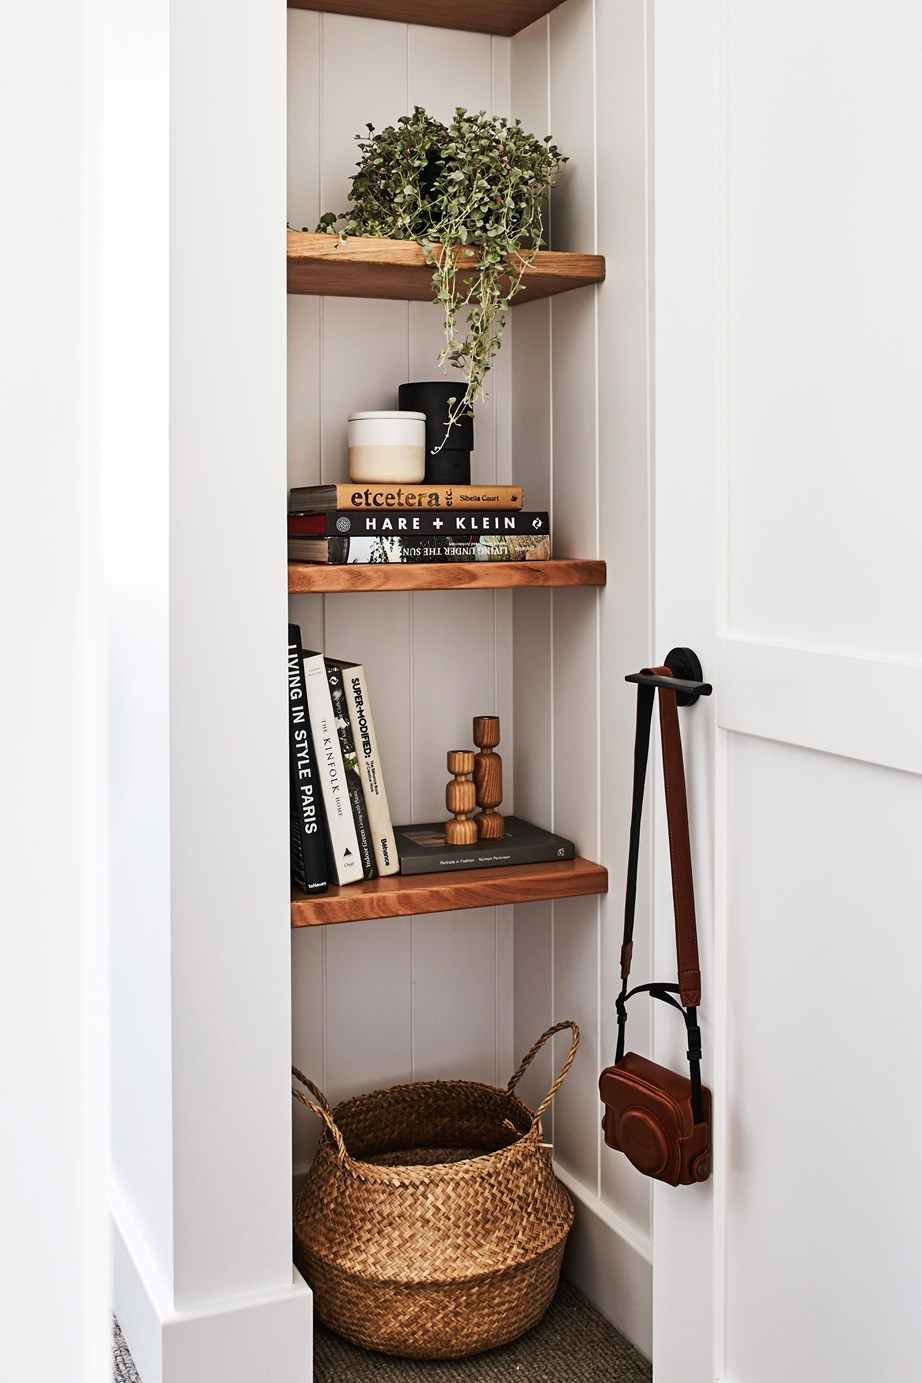 If there's no floorspace to spare, cutting into the wall to create built-in shelving will add character to a non-existent entrance, not to mention some bonus storage! Note: You will need to hire a carpenter or joiner to do this.